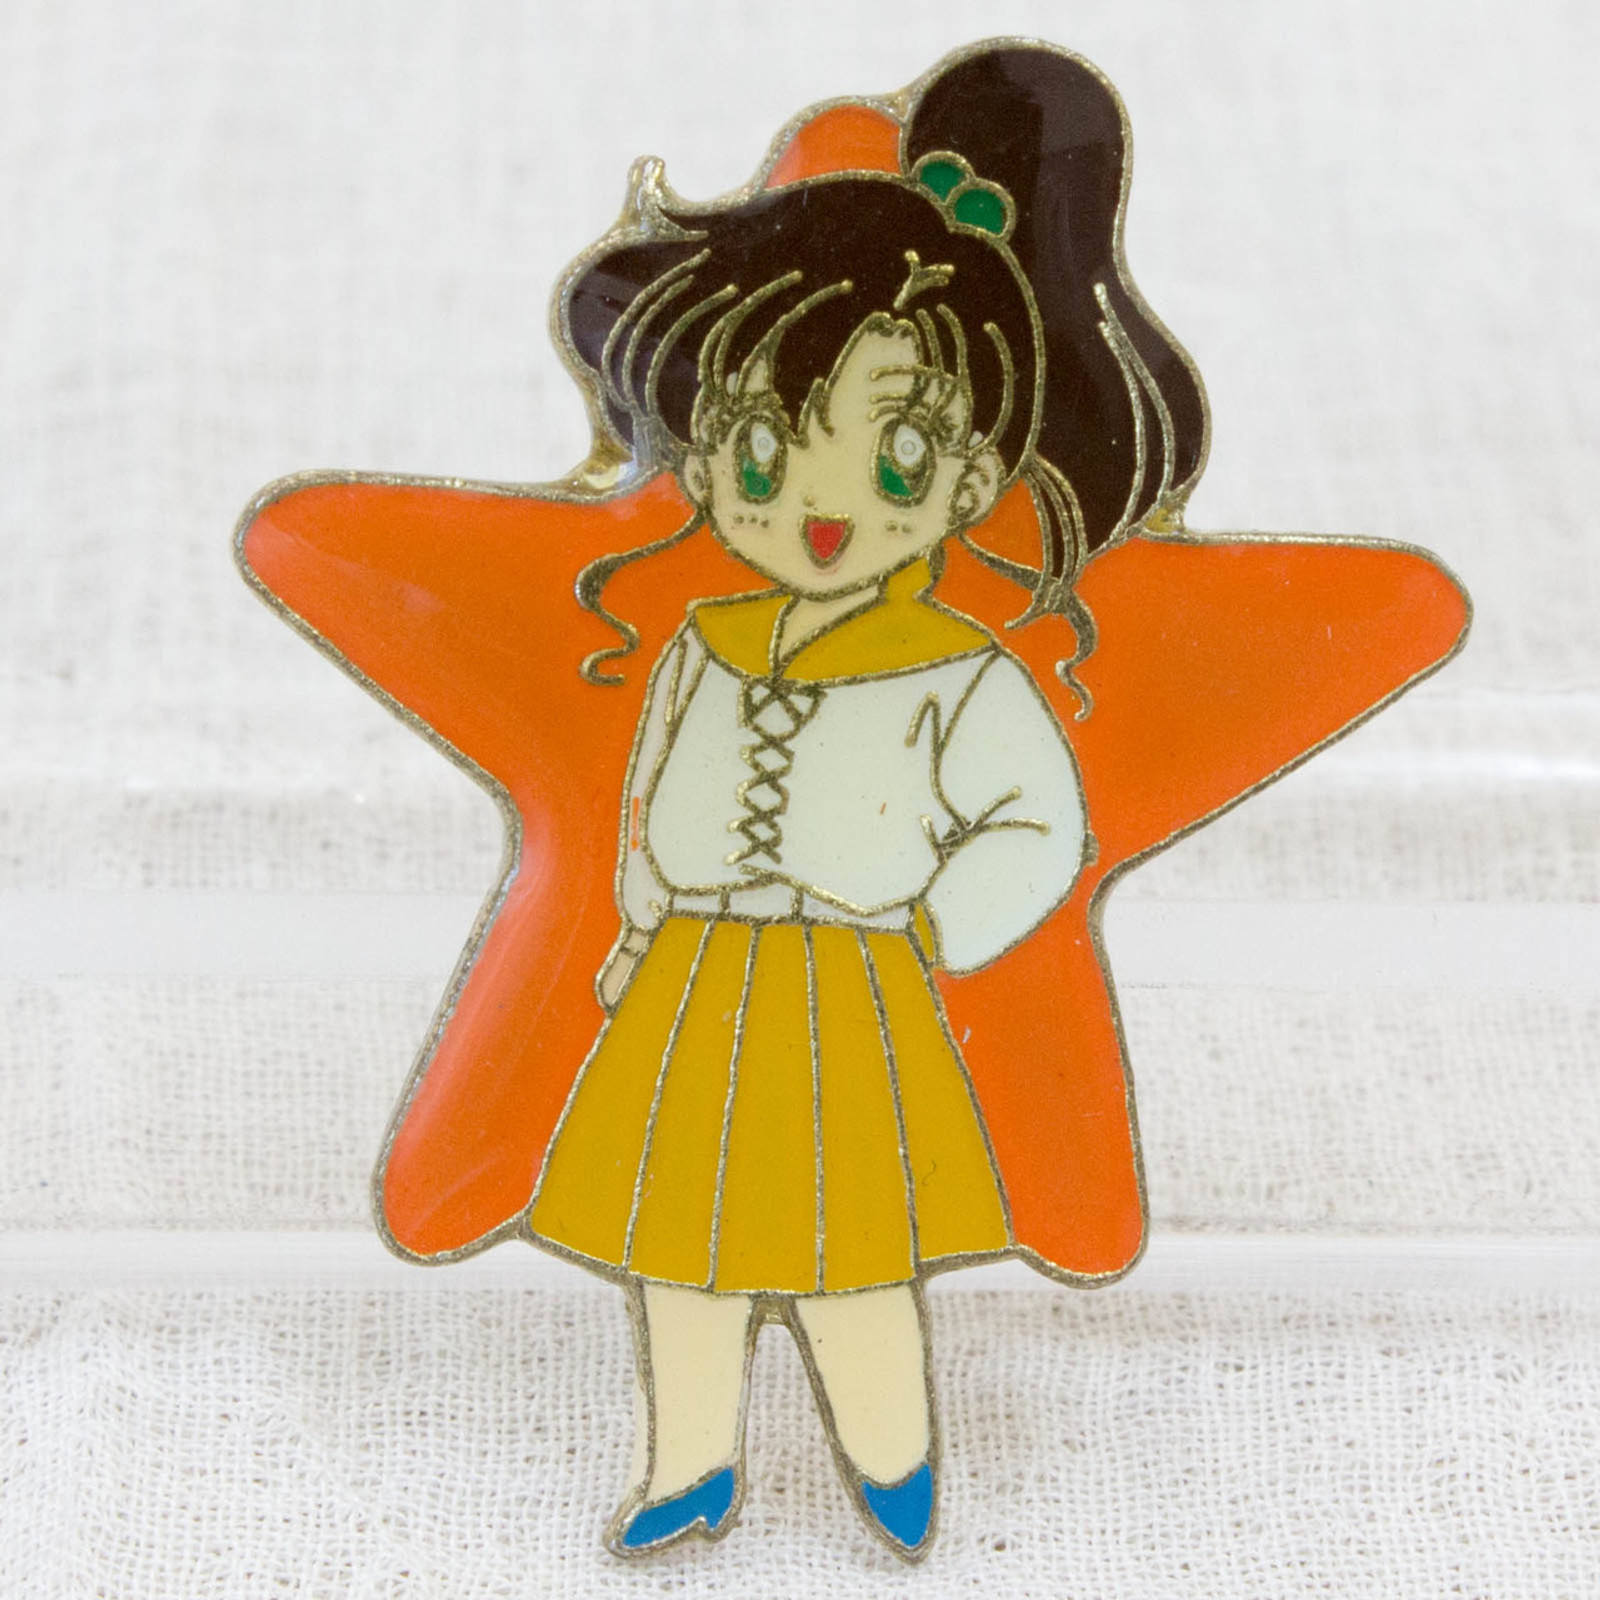 Sailor Moon Makoto Kino (Sailor Jupiter) Metal Pins Badge JAPAN ANIME 1